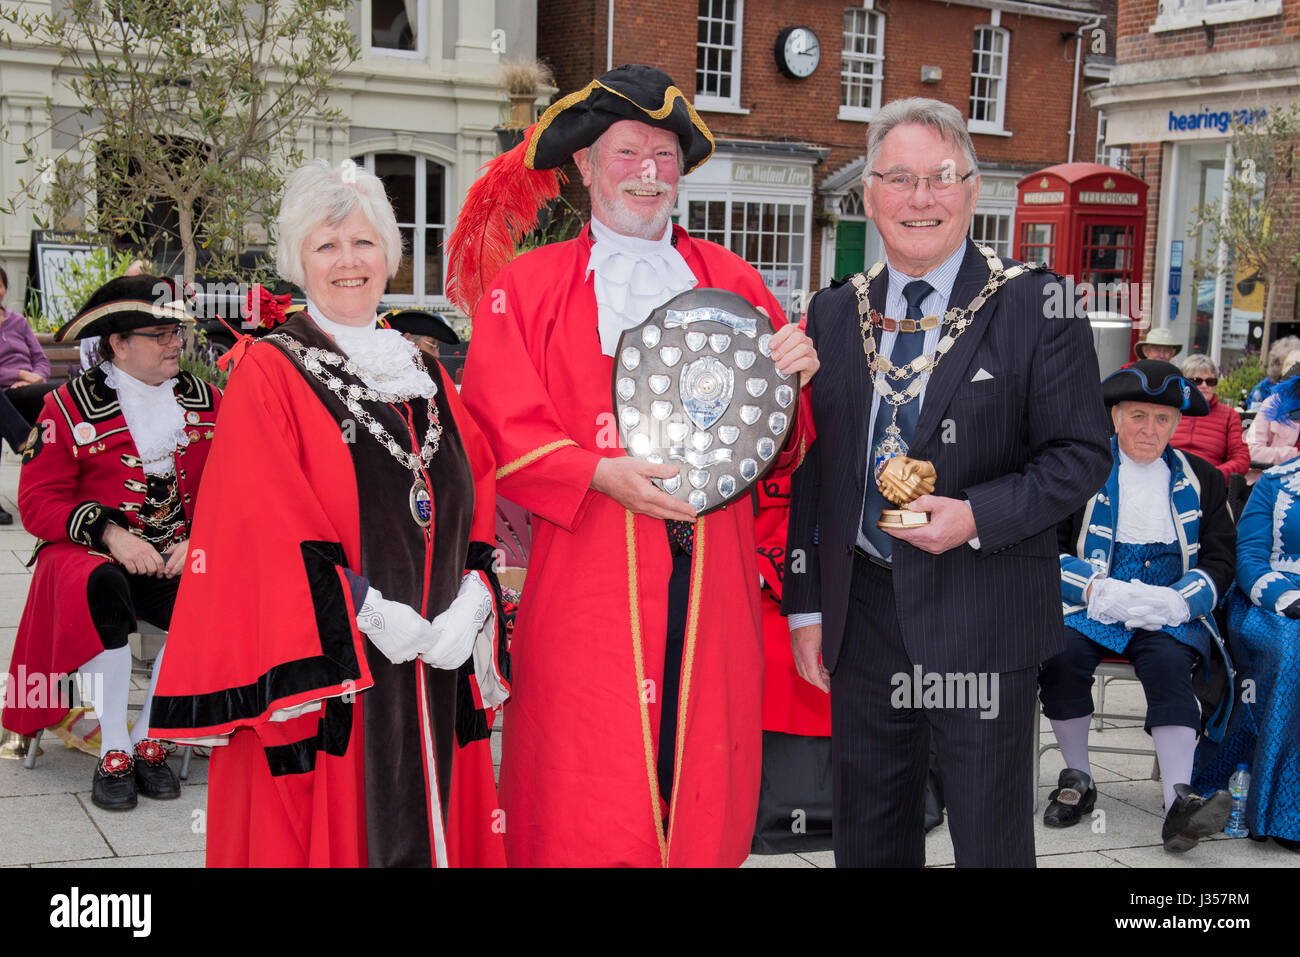 Second Place for the Southern England Town Crier 2017 is John Collingwood - Bridport. Awards presented by Mayor - Stock Image